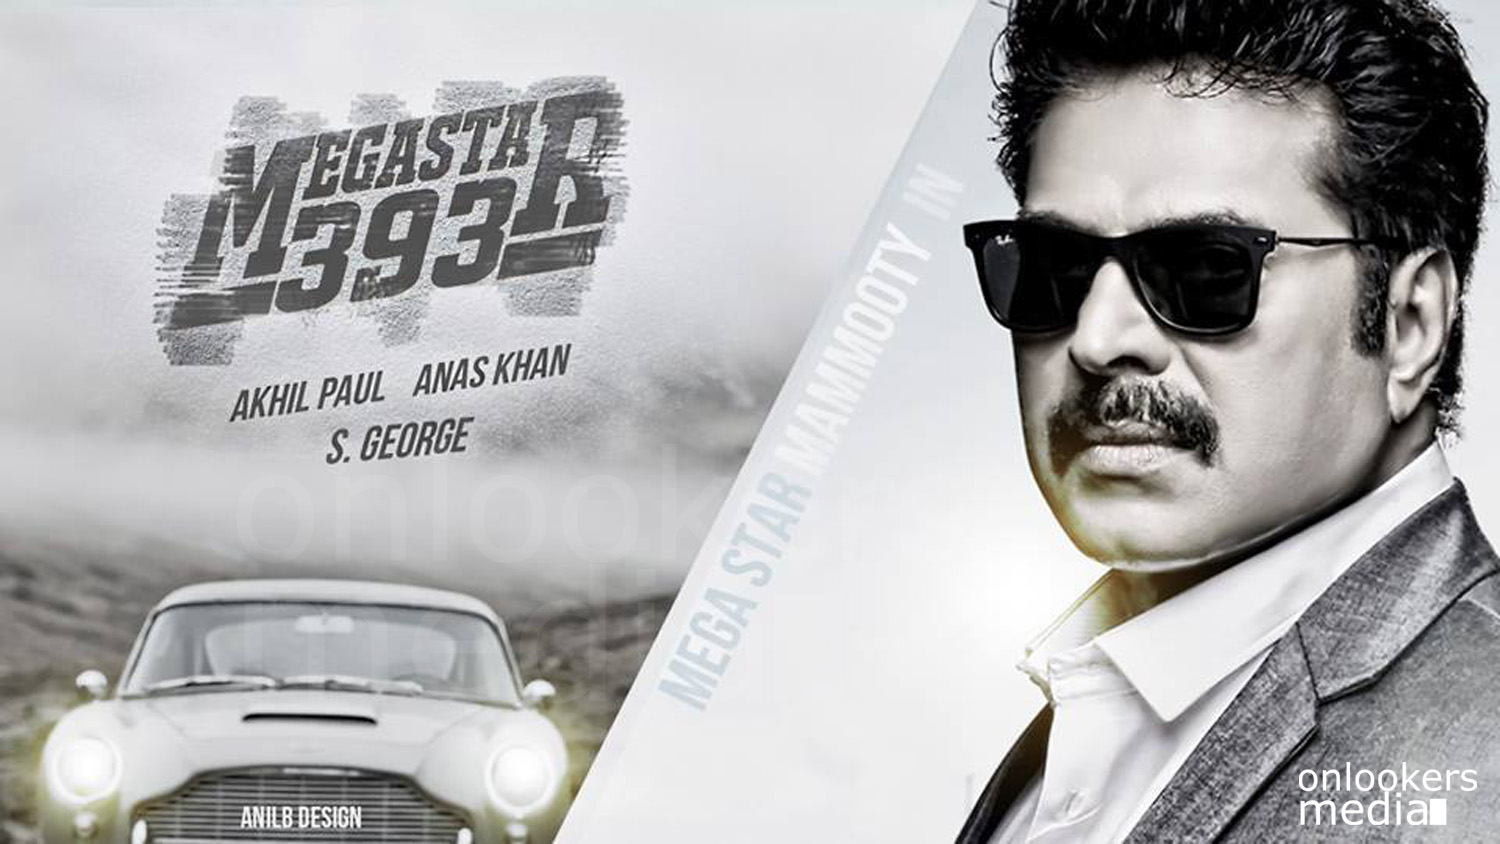 Mammootty in Megastar 393-Malayalam movie 2015